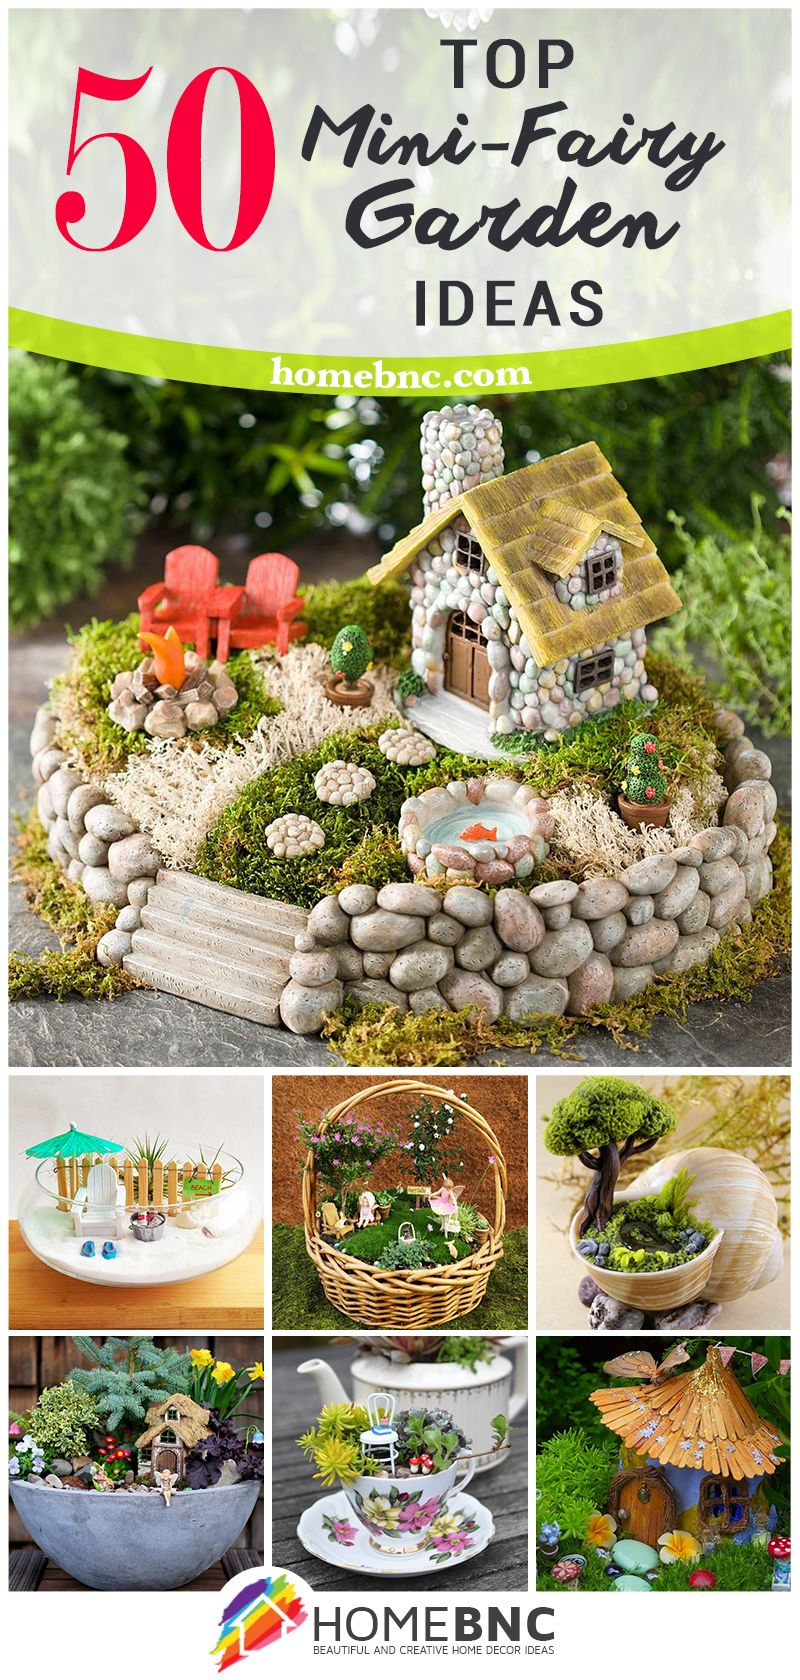 Fairy Gardens Ideas hit the road jack The Top 50 Mini Fairy Garden Design Ideas